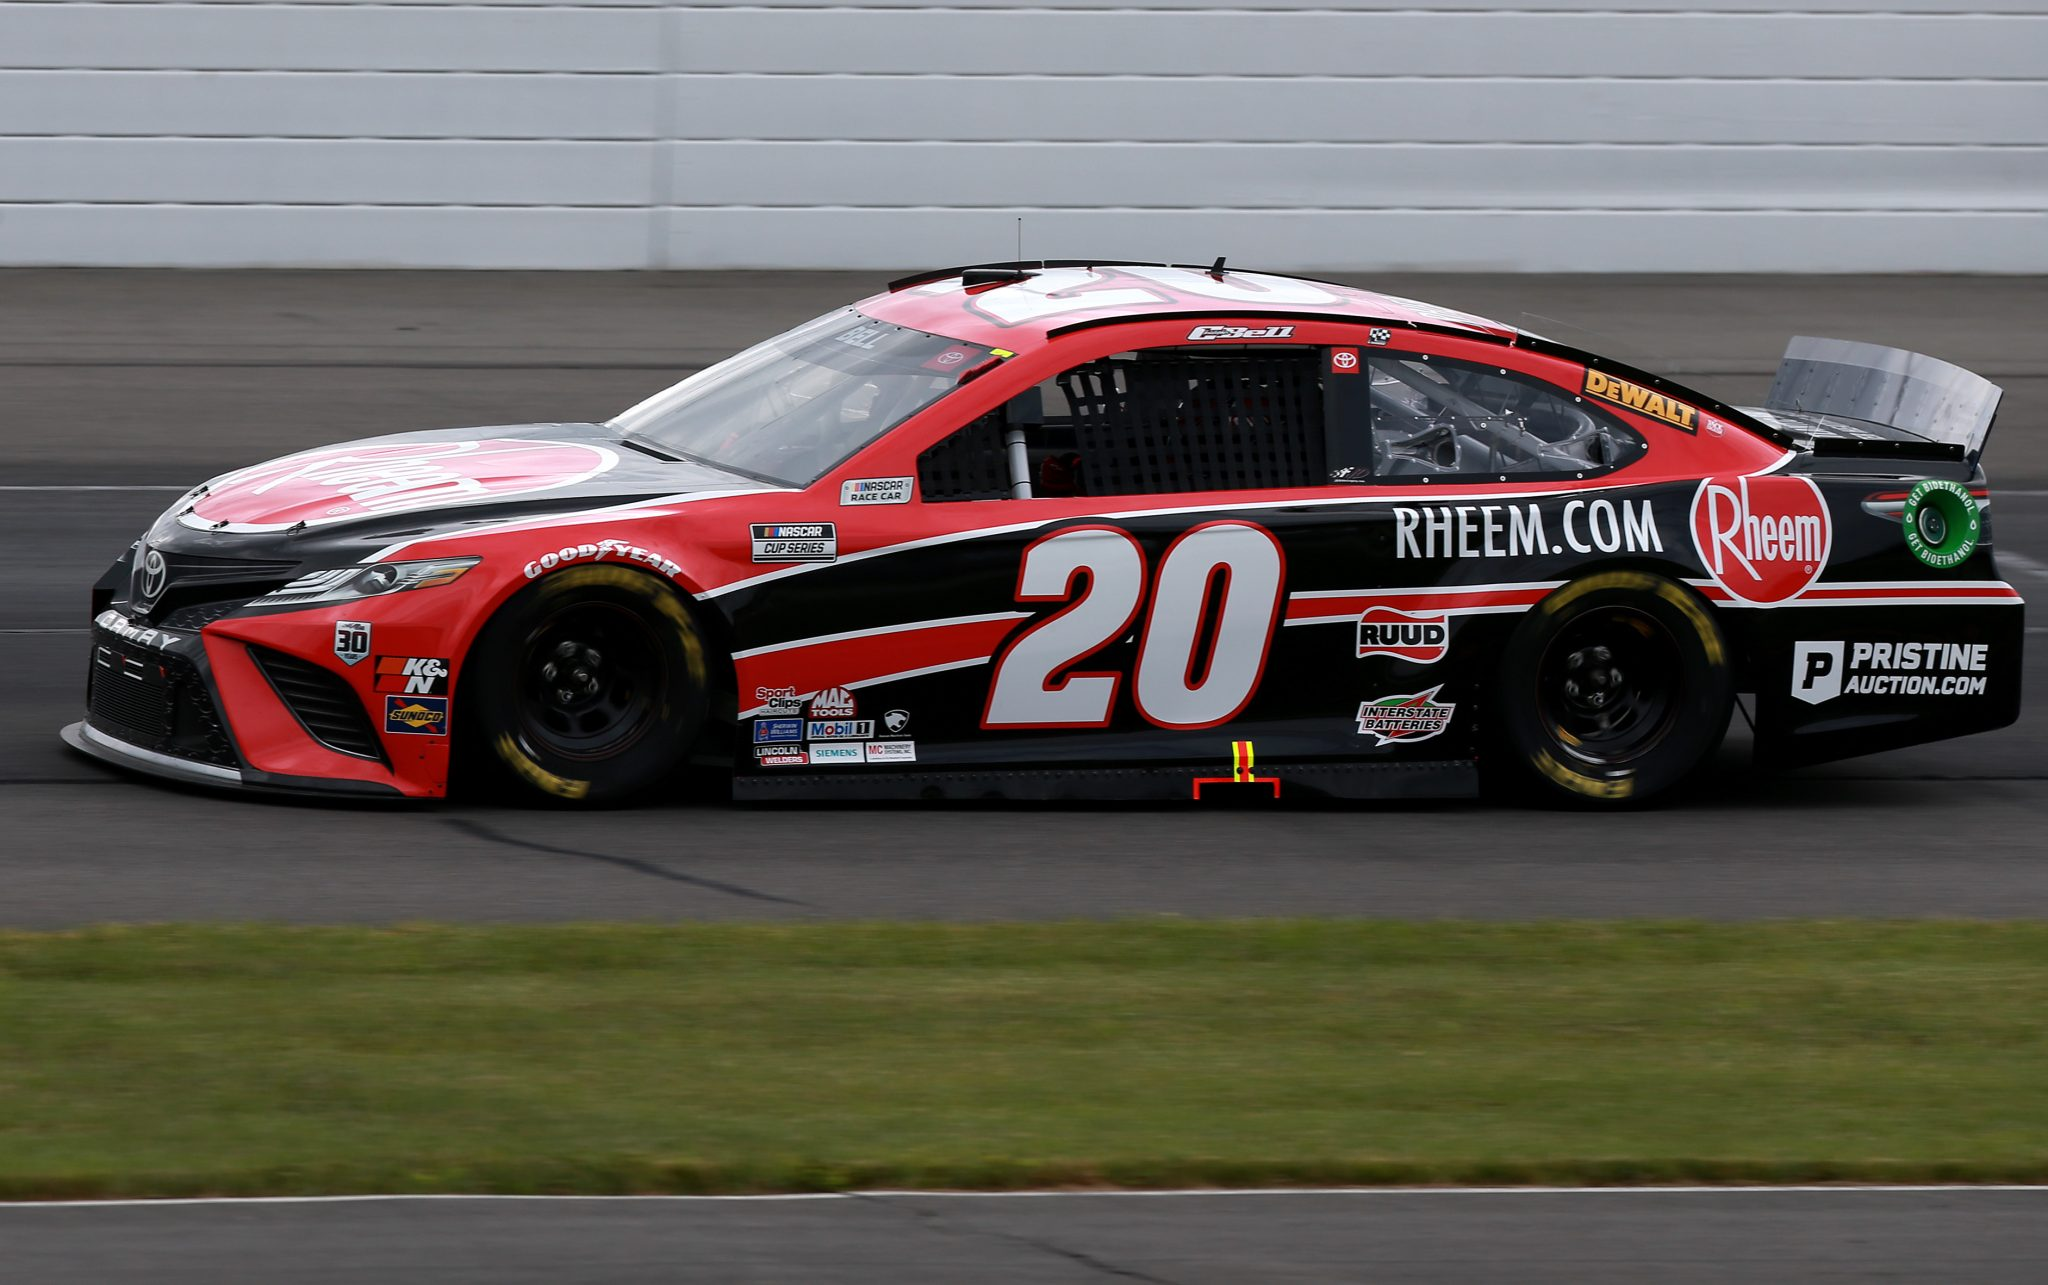 LONG POND, PENNSYLVANIA - JUNE 26: Christopher Bell, driver of the #20 Rheem Toyota, drives during the NASCAR Cup Series Pocono Organics CBD 325 at Pocono Raceway on June 26, 2021 in Long Pond, Pennsylvania. (Photo by Sean Gardner/Getty Images) | Getty Images